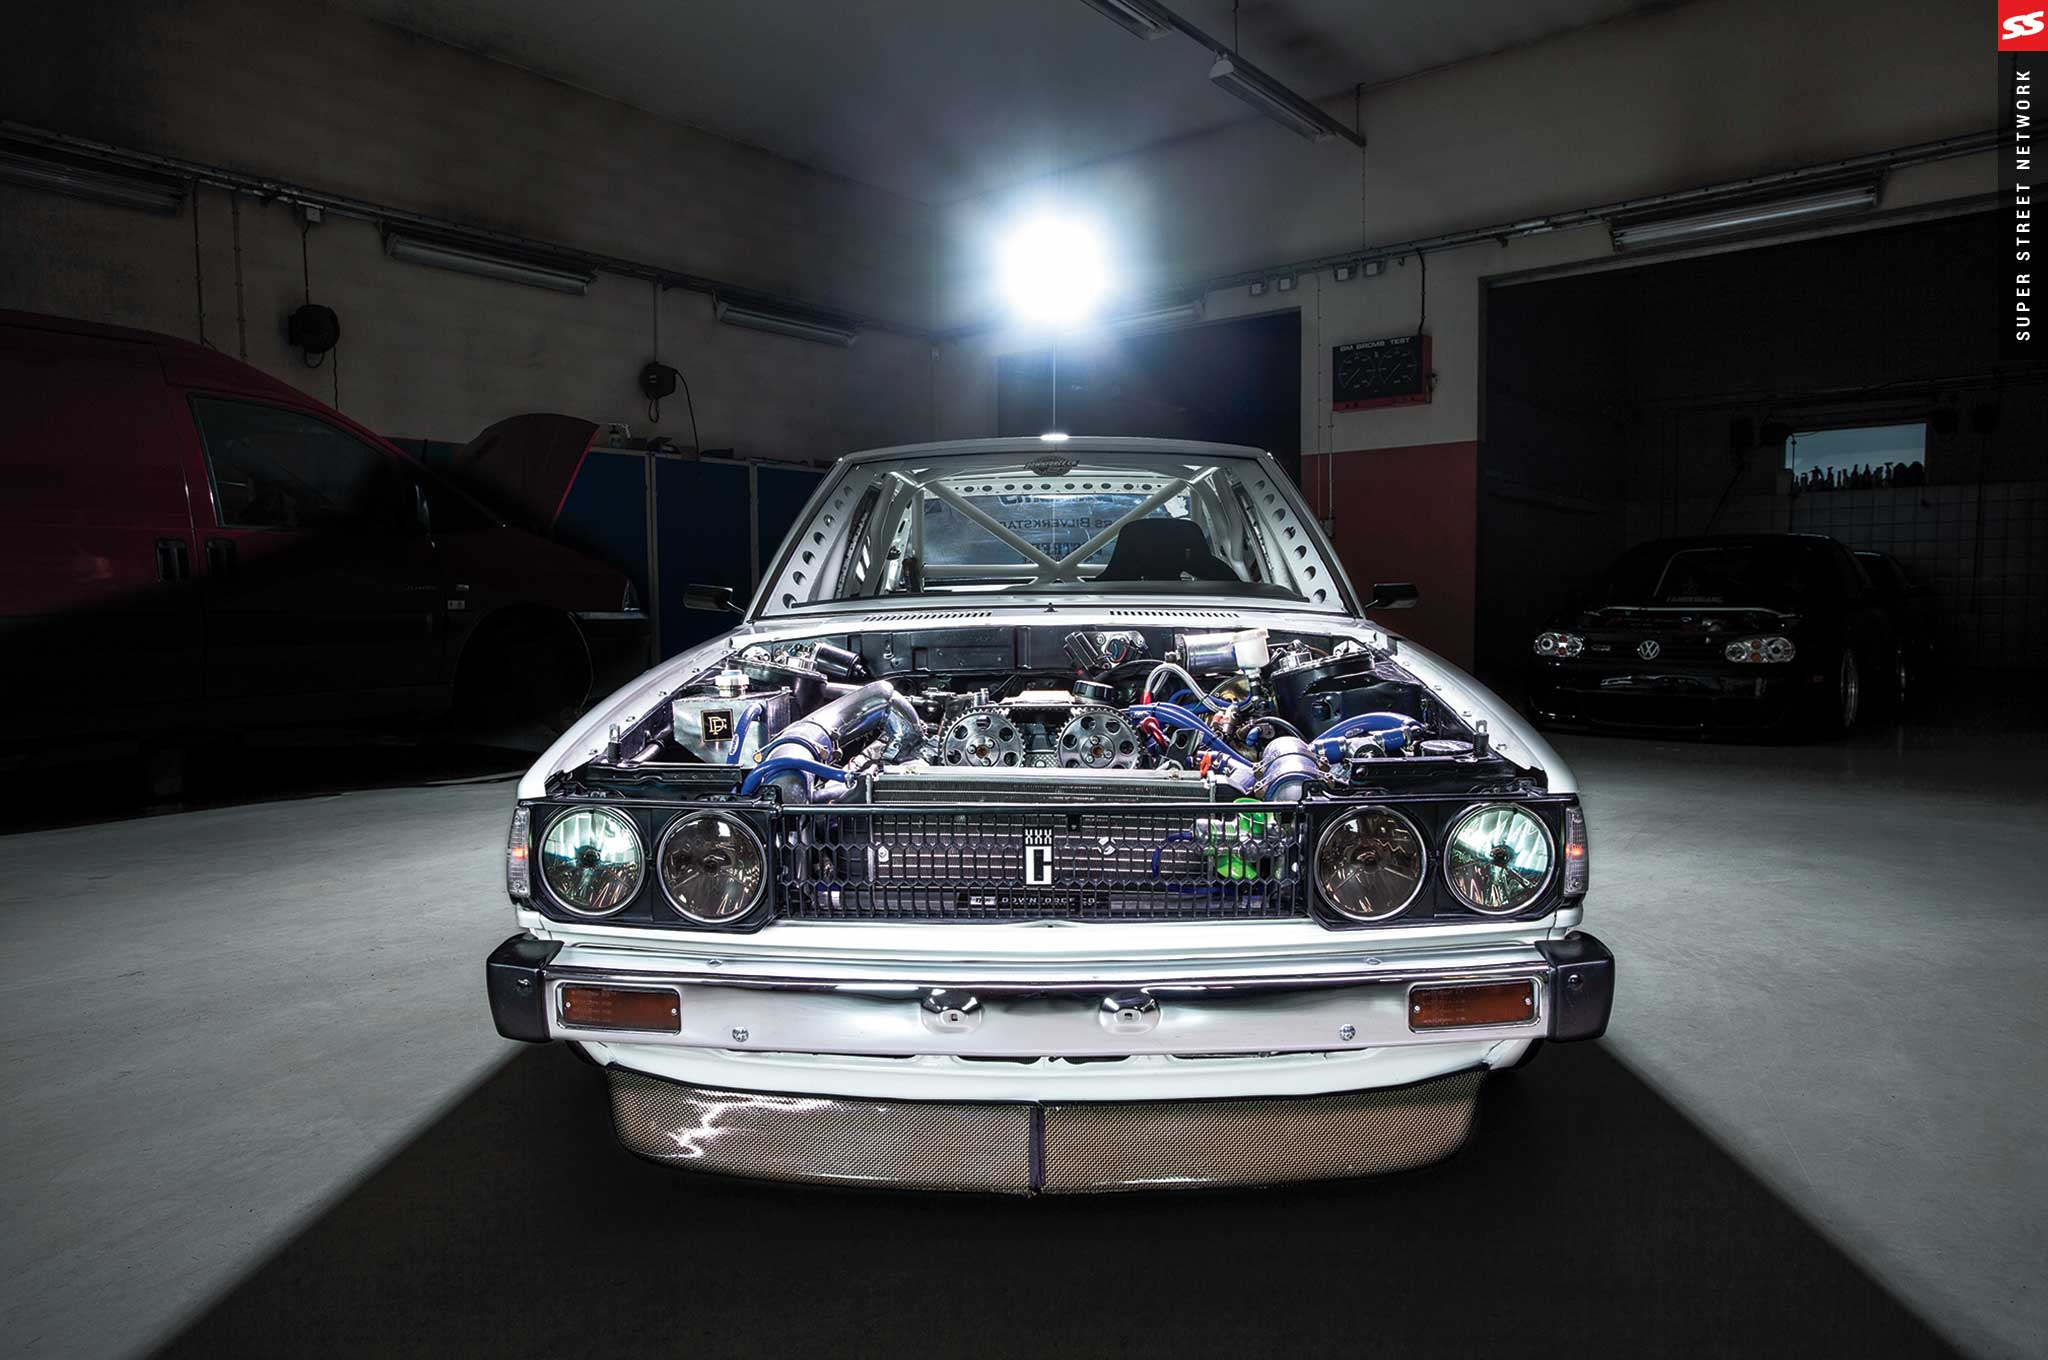 1981 Toyota KE70 Corolla with a Volvo S70R Turbo Engine Swap